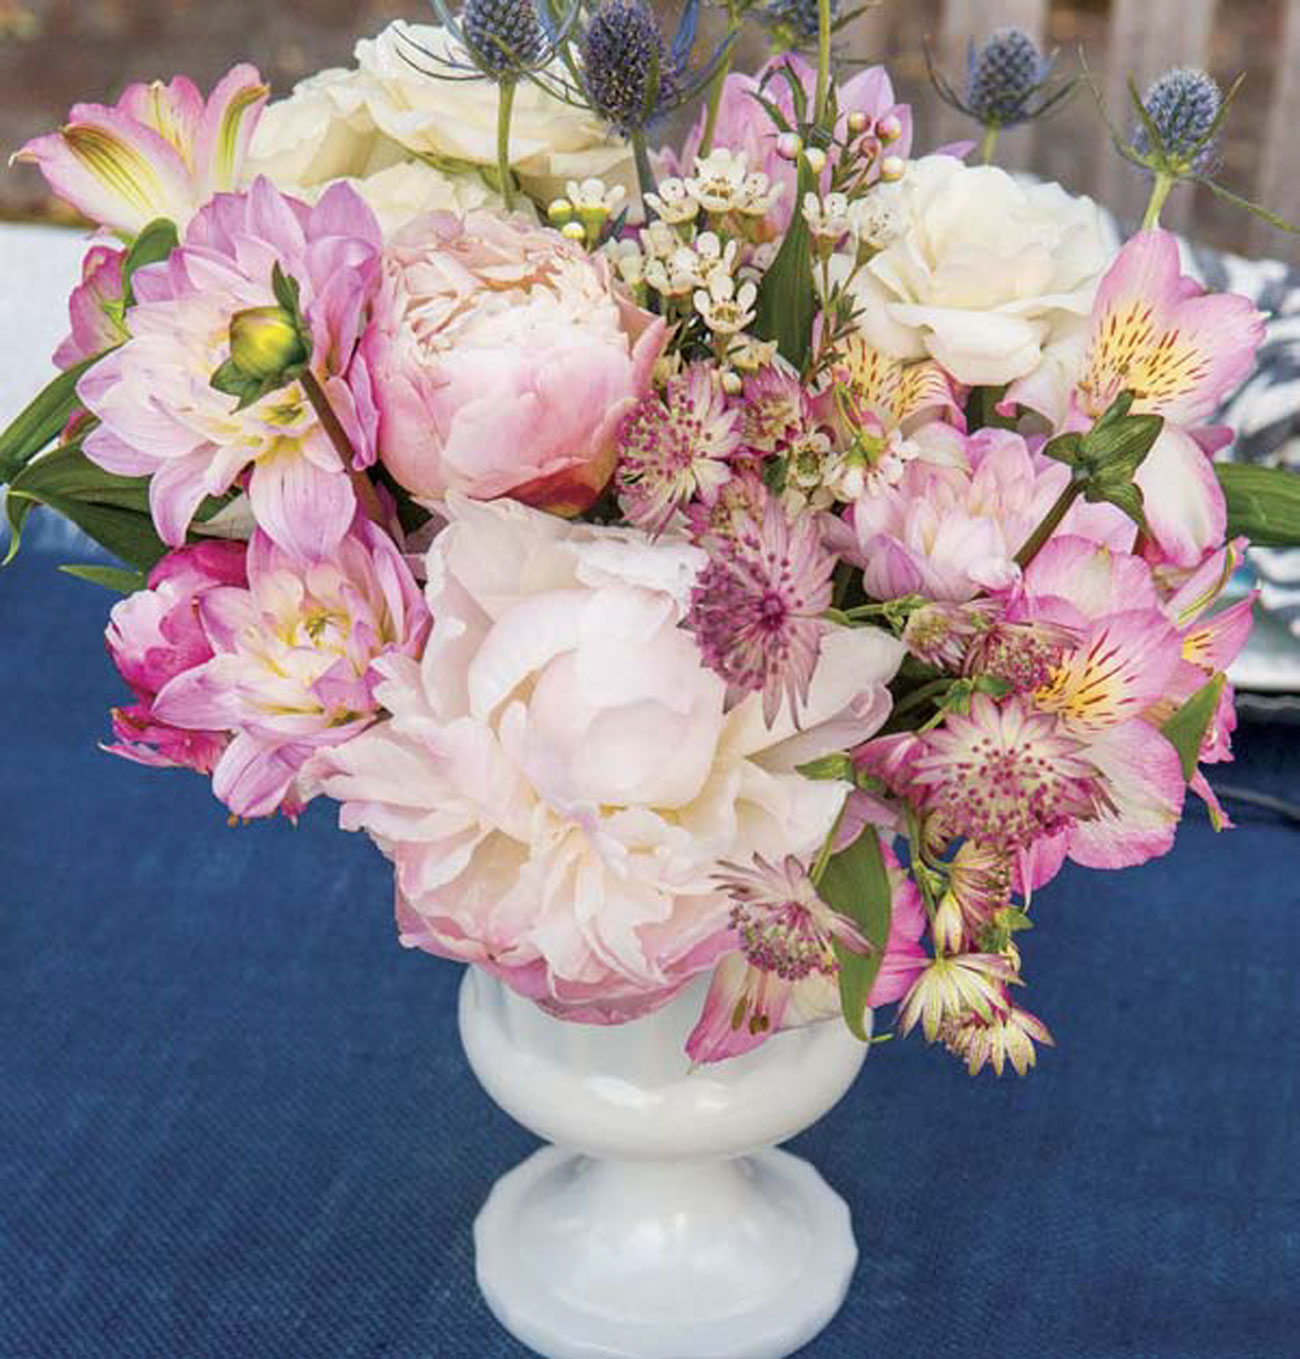 Peonies, dahlias, alstroemeria, Scottish thistles, roses and wax flowers combine for a tone-on-tone arrangement